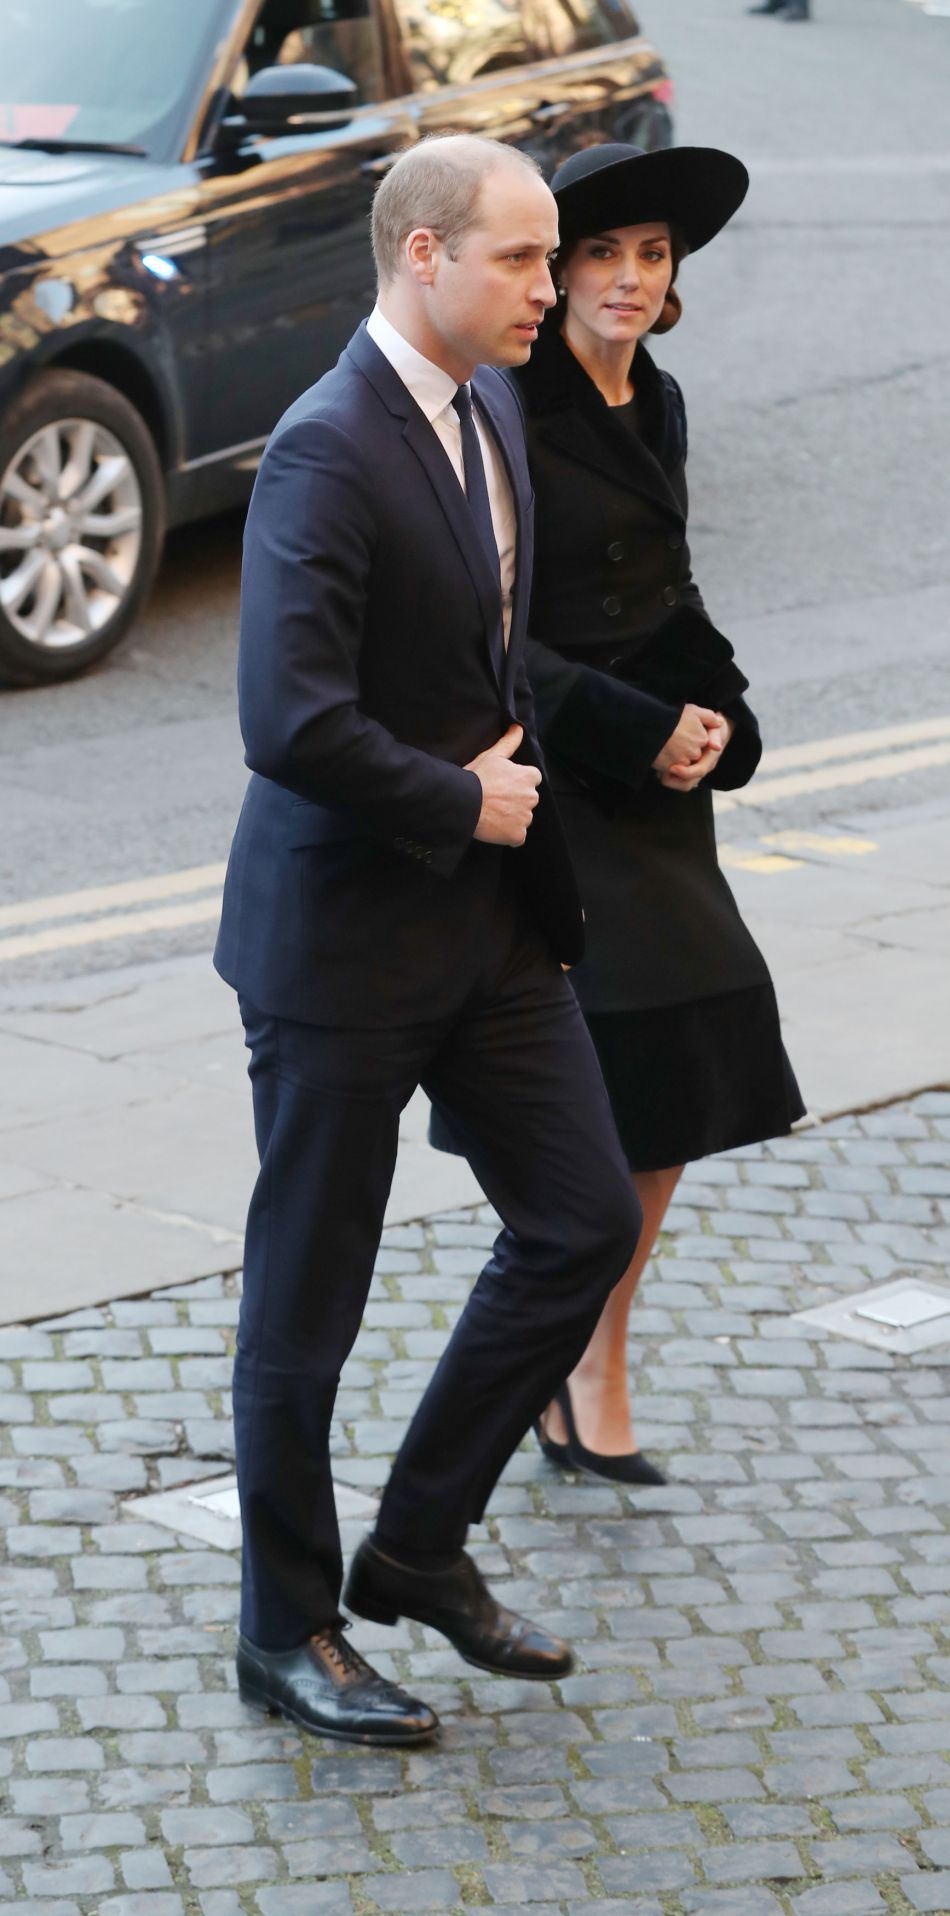 Kate Middleton et le prince William assistent à la messe en hommage au duc de Westminster ce lundi 28 novembre 2016.